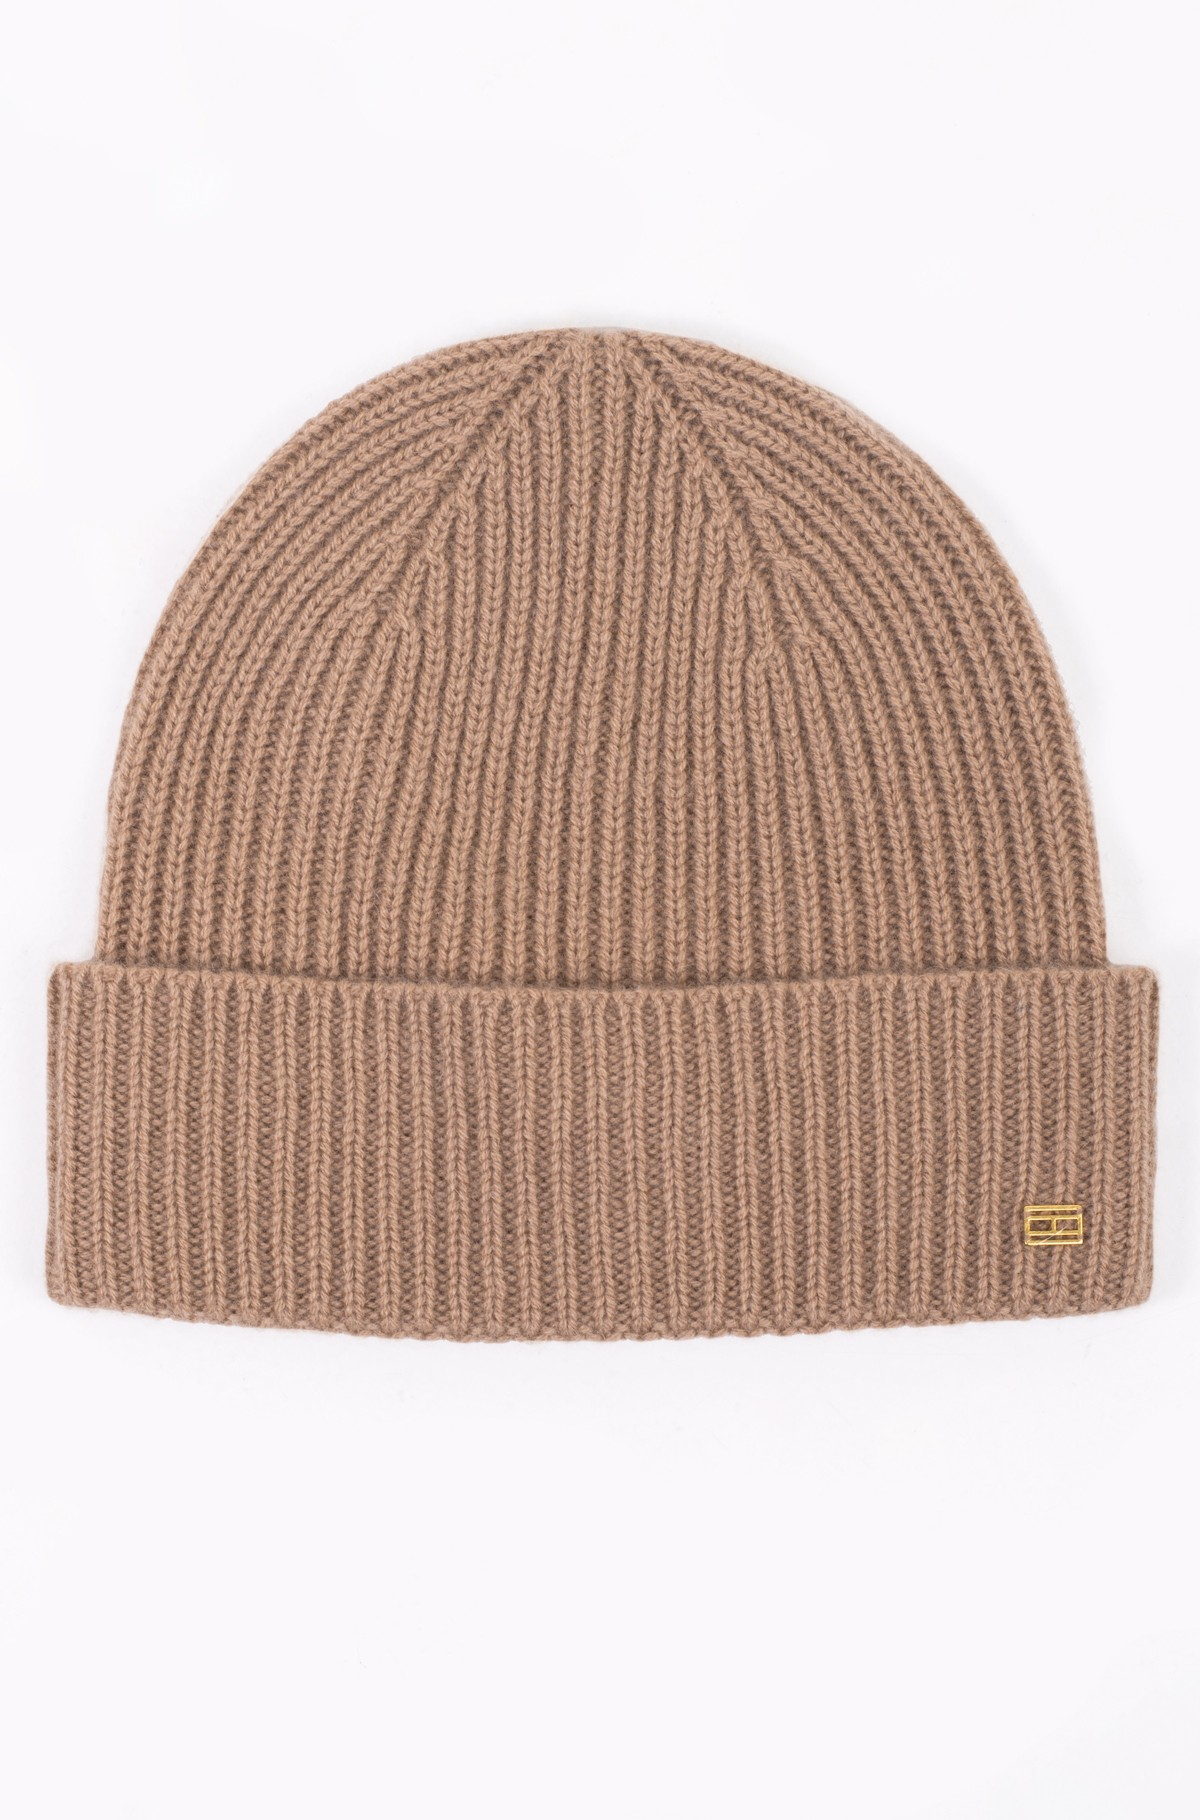 Hat TH LUX CASHMERE BEANIE-full-2